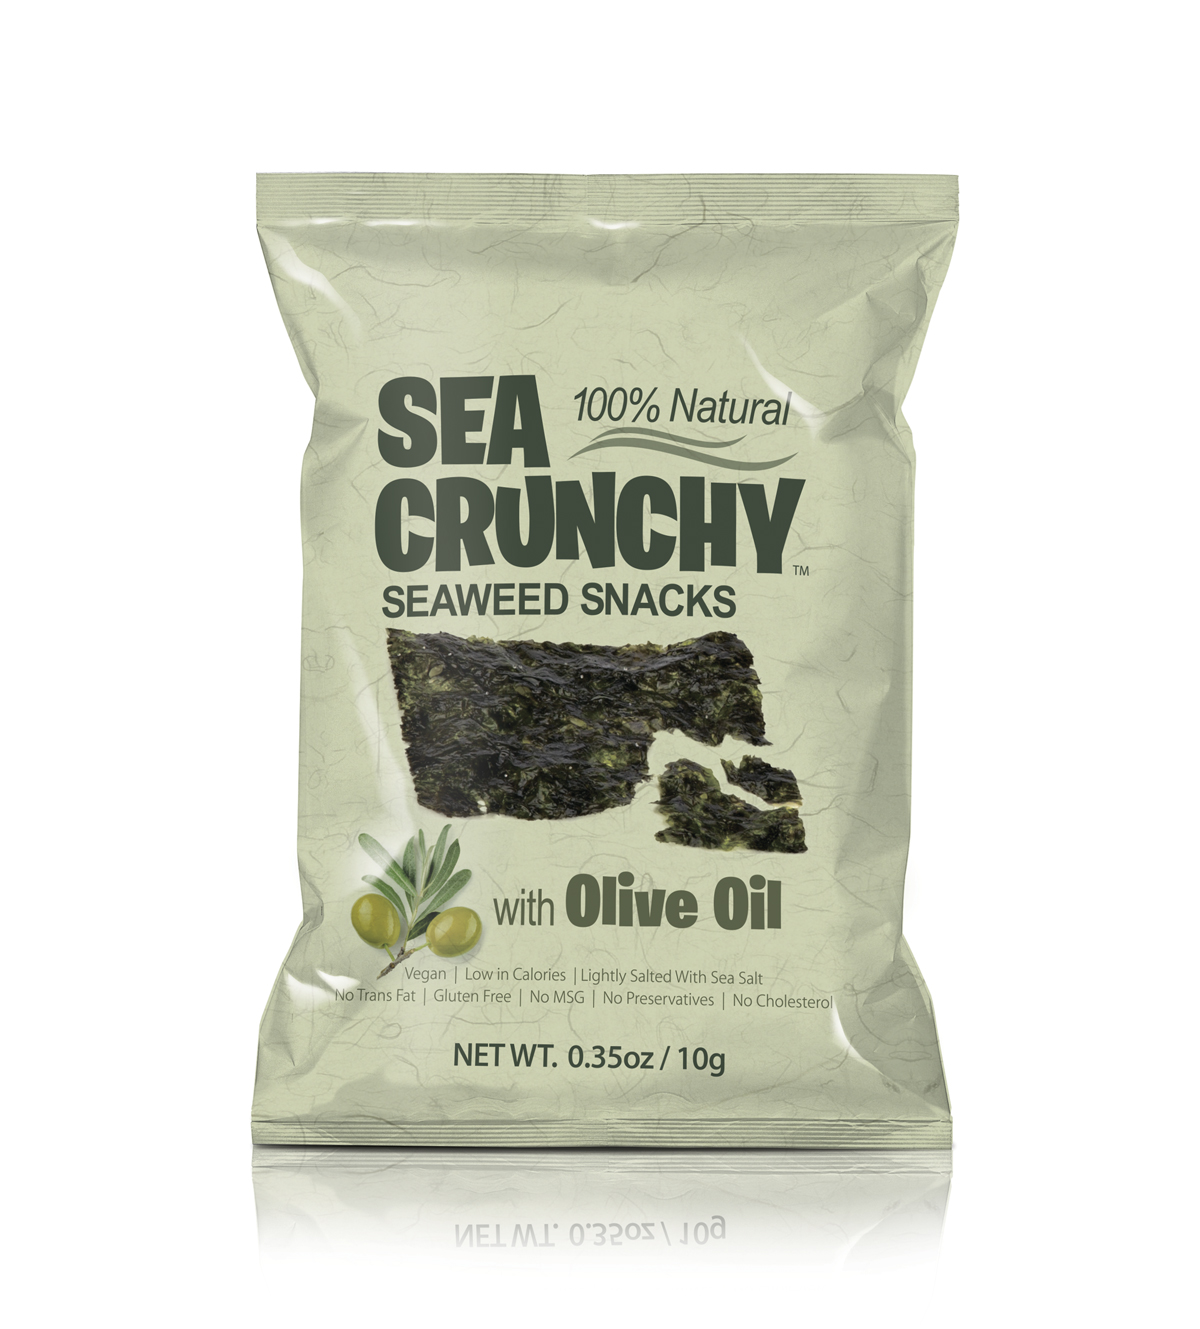 SEA CRUNCHY Seaweed Snacks with olive oil image.